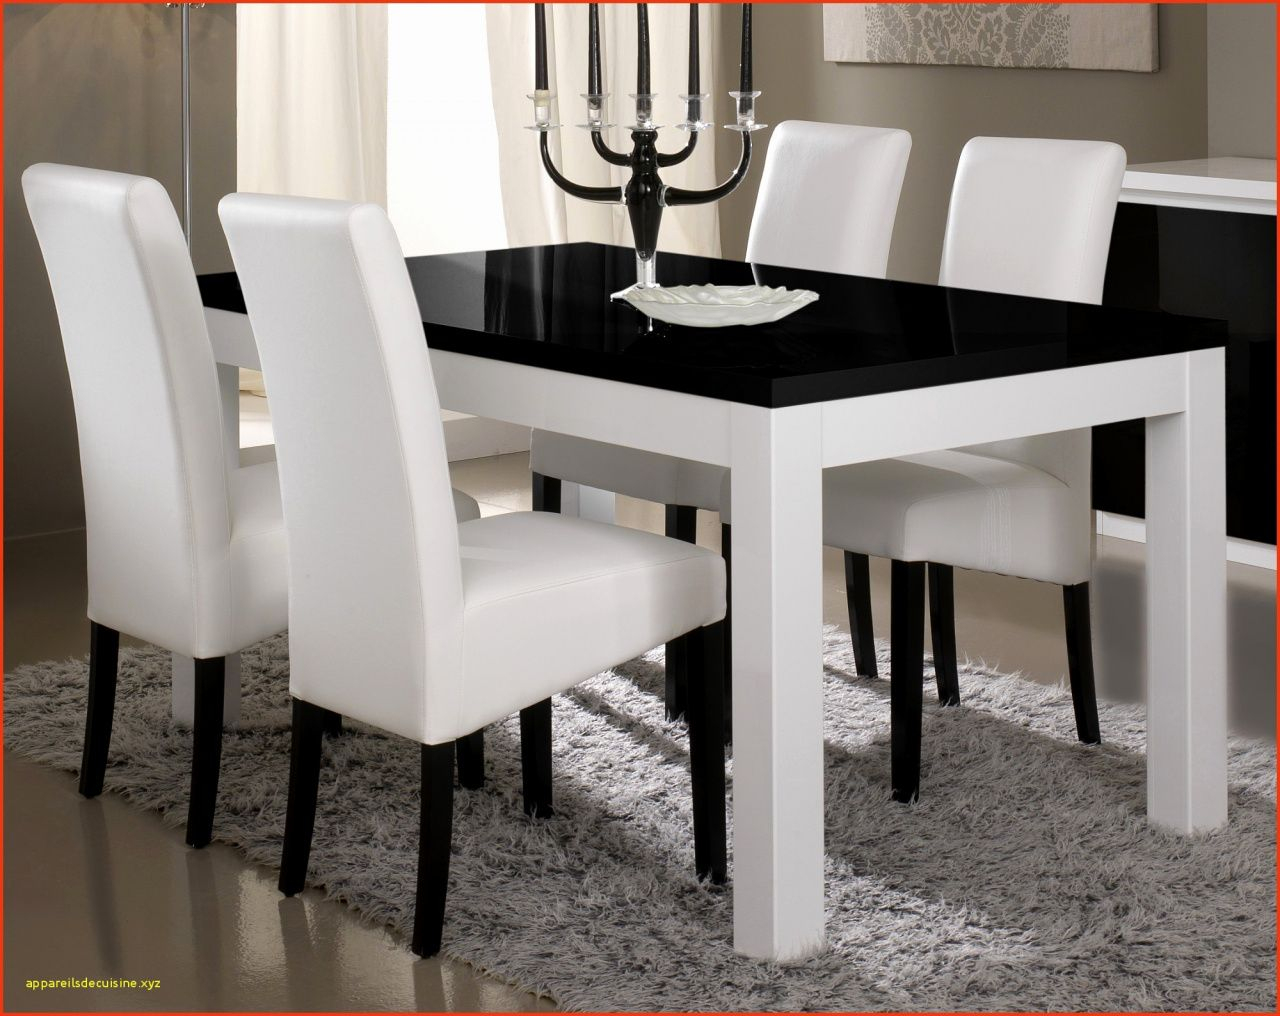 77 chaises salle a manger but table a